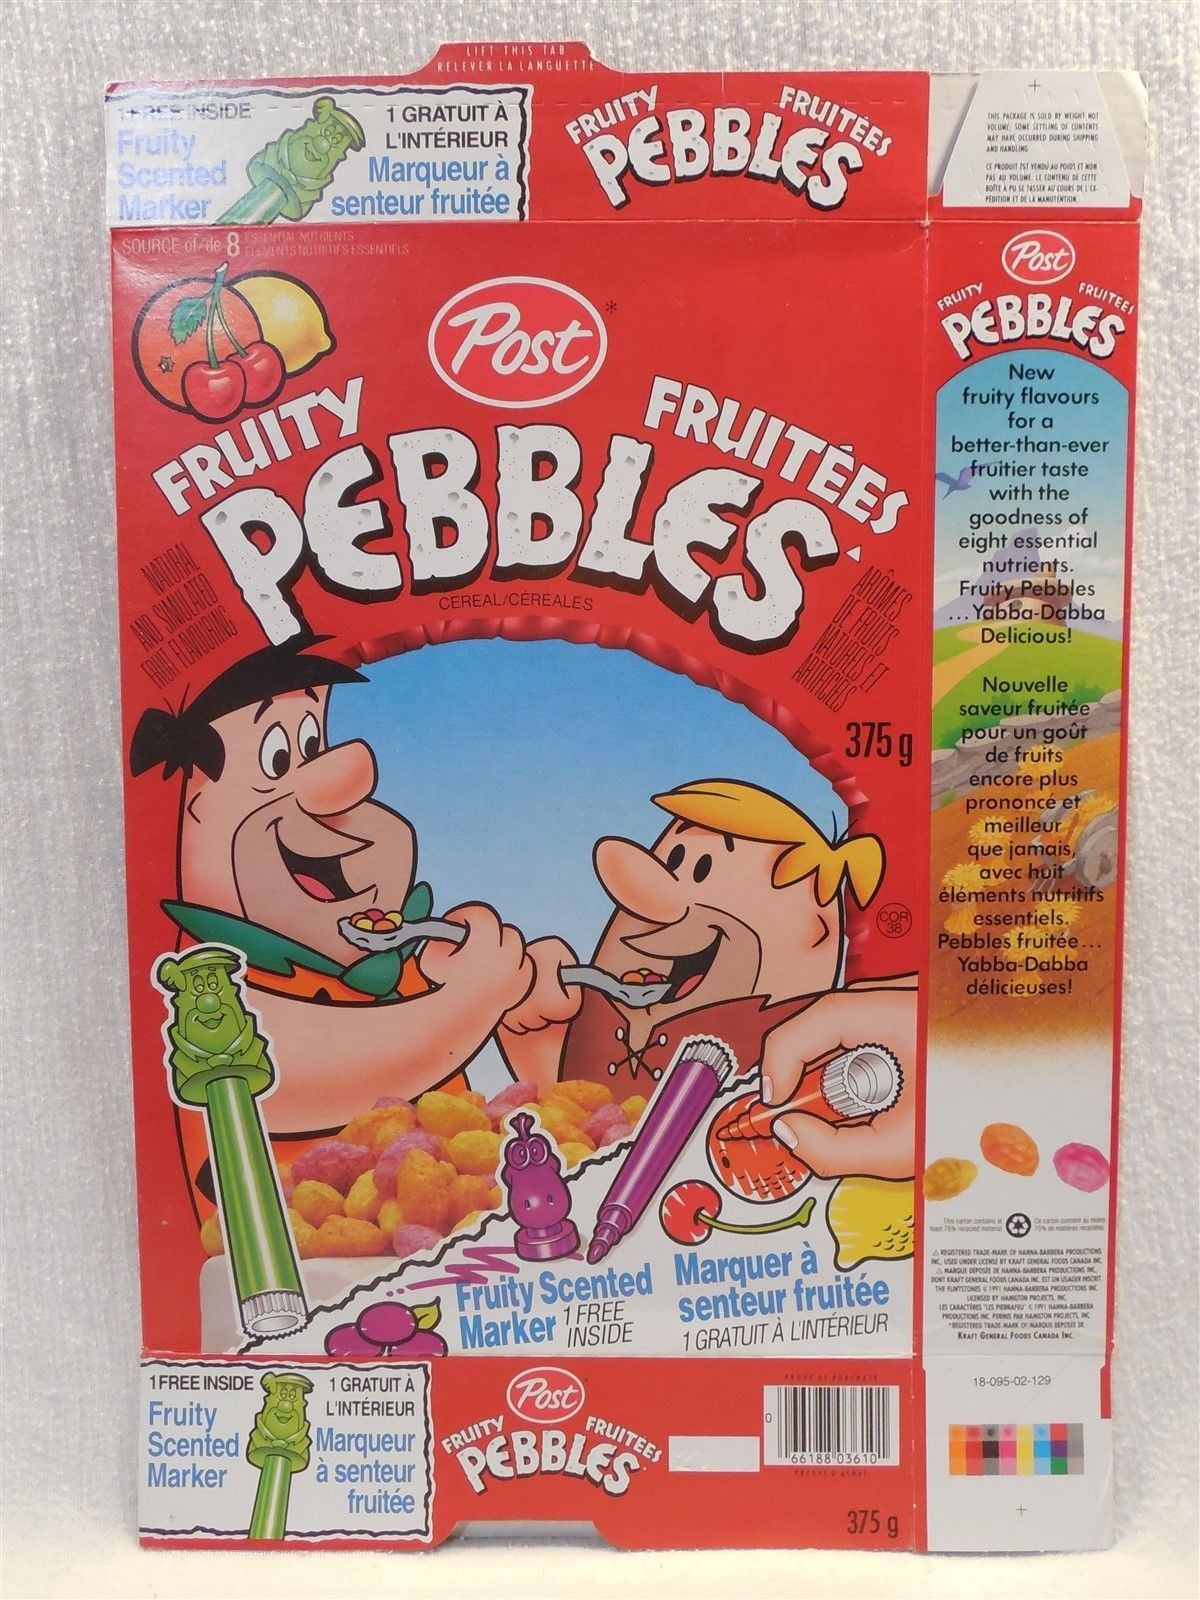 Flintstones 1991 Post Fruity Pebbles Cereal and 50 similar items